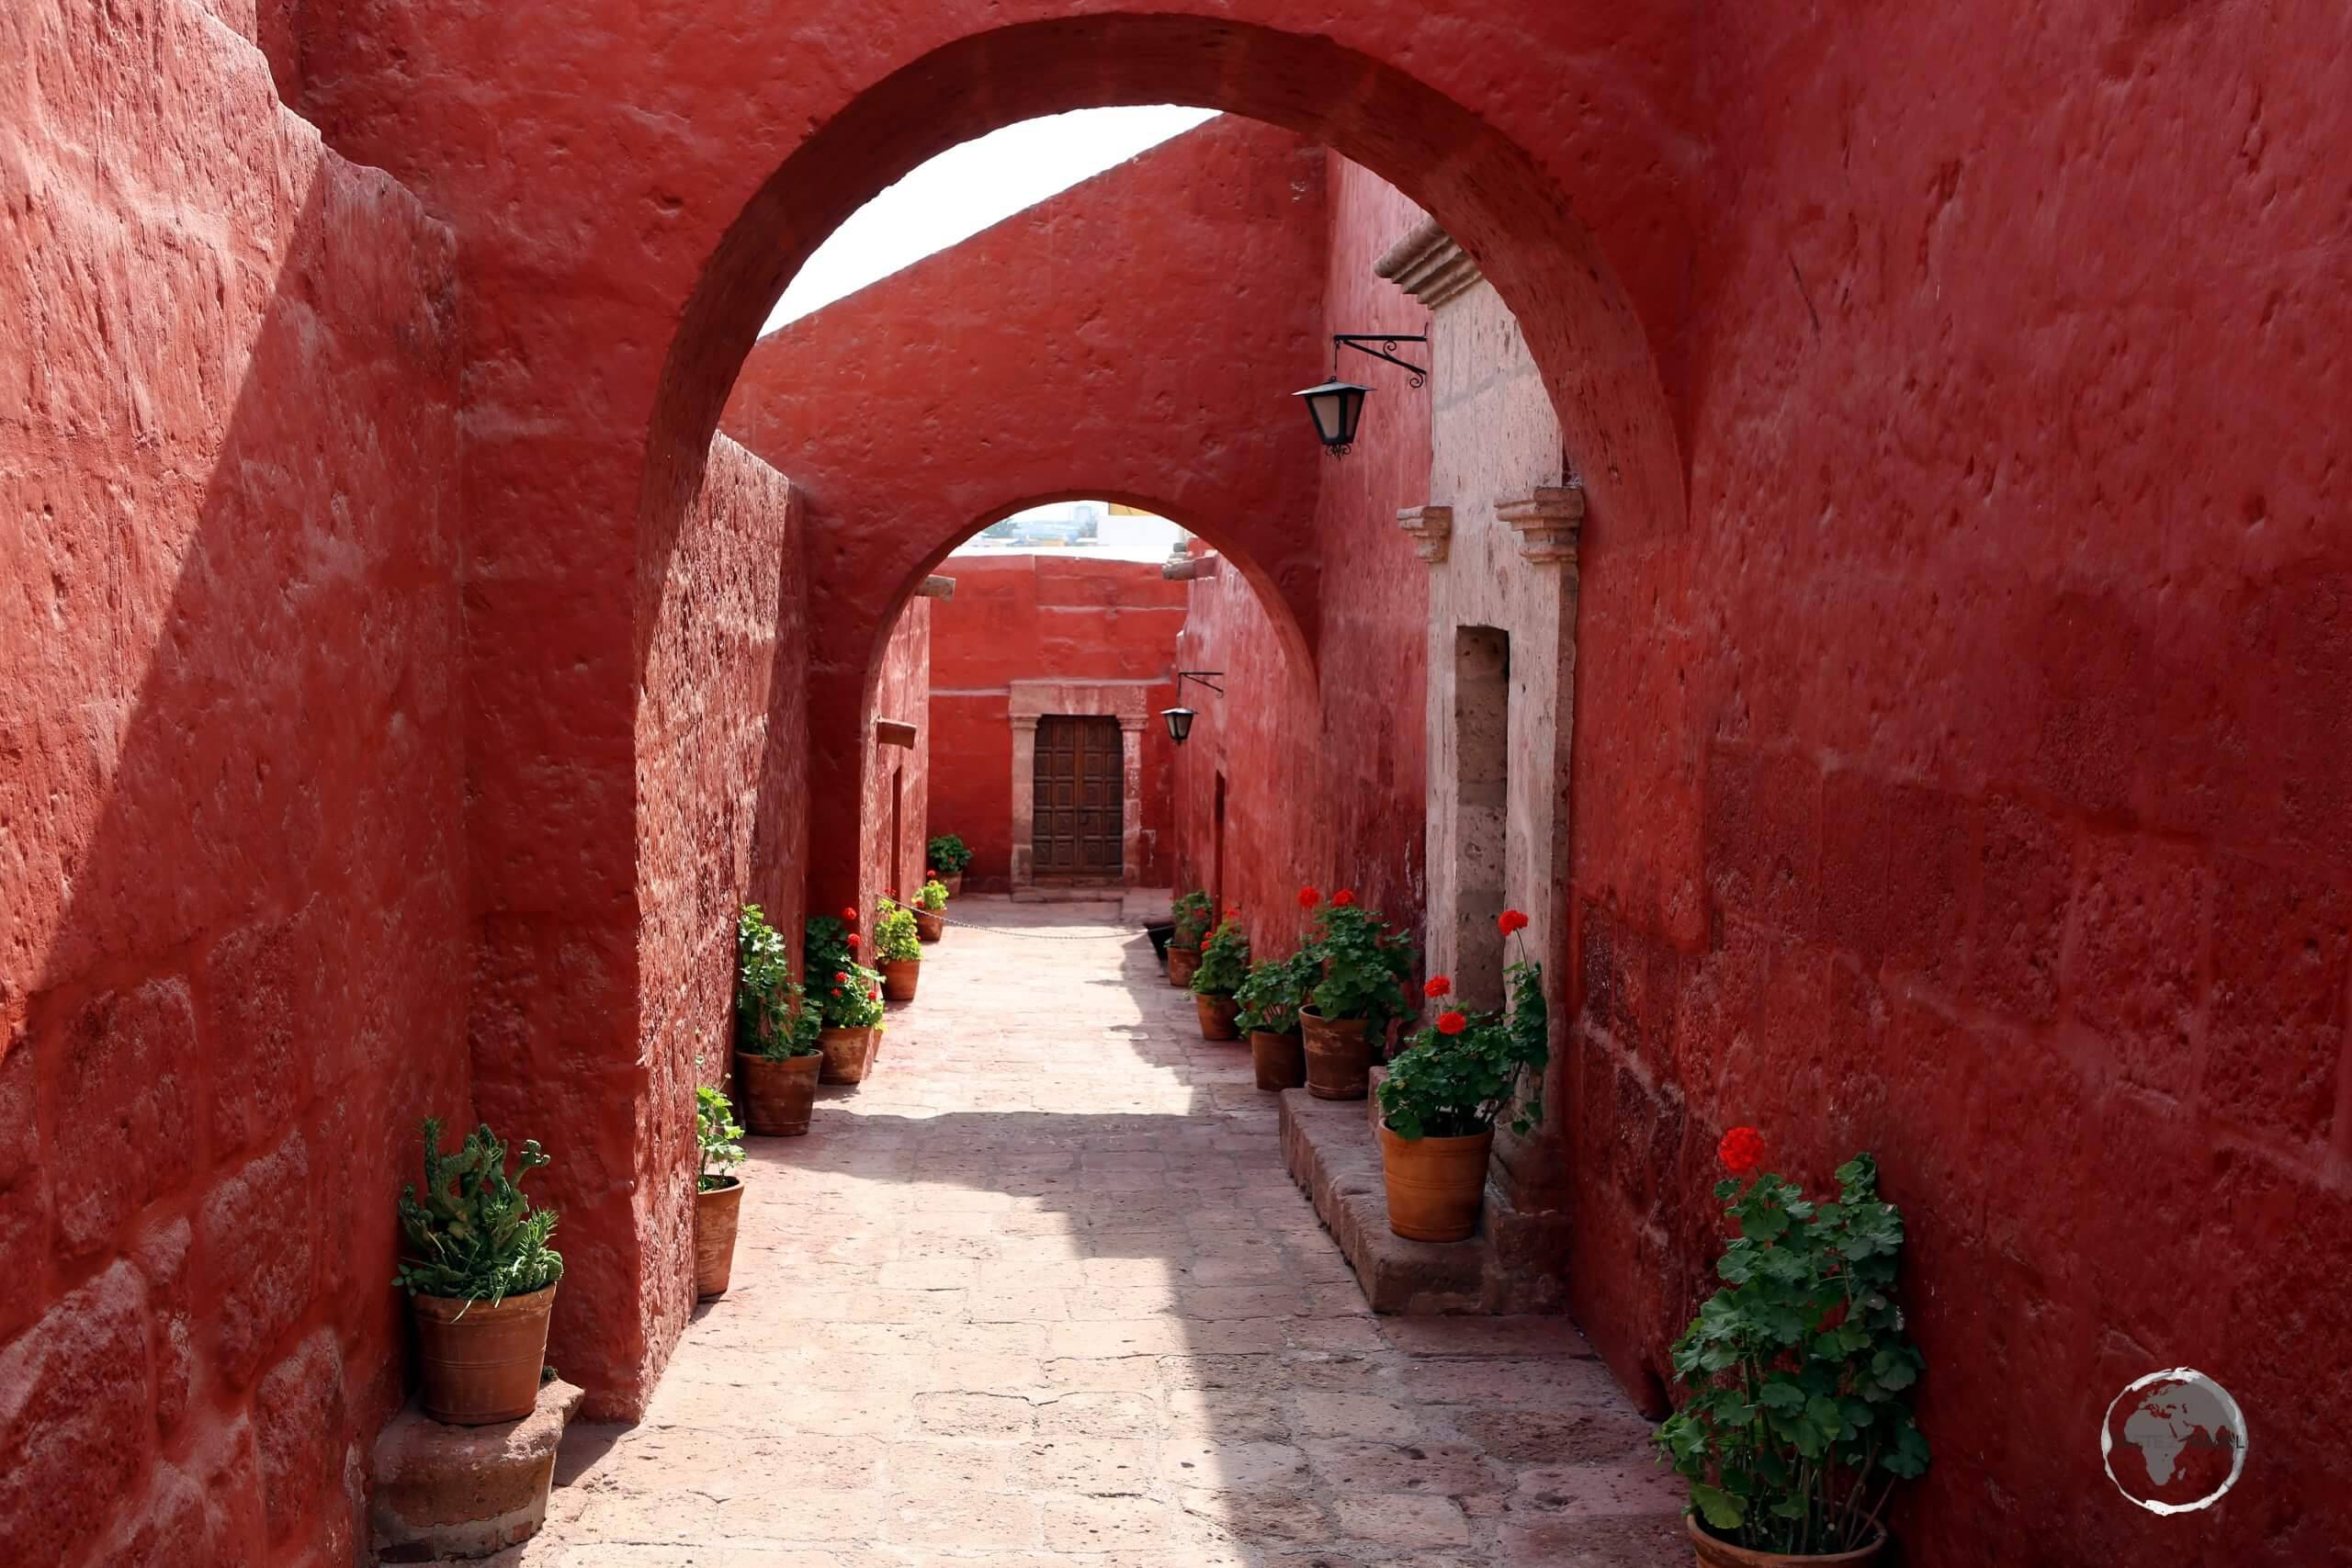 The Convent of Santa Catalina de Siena served as a cloister for Dominican nuns from the sixteenth to the eighteenth centuries, and still houses a small religious community today.